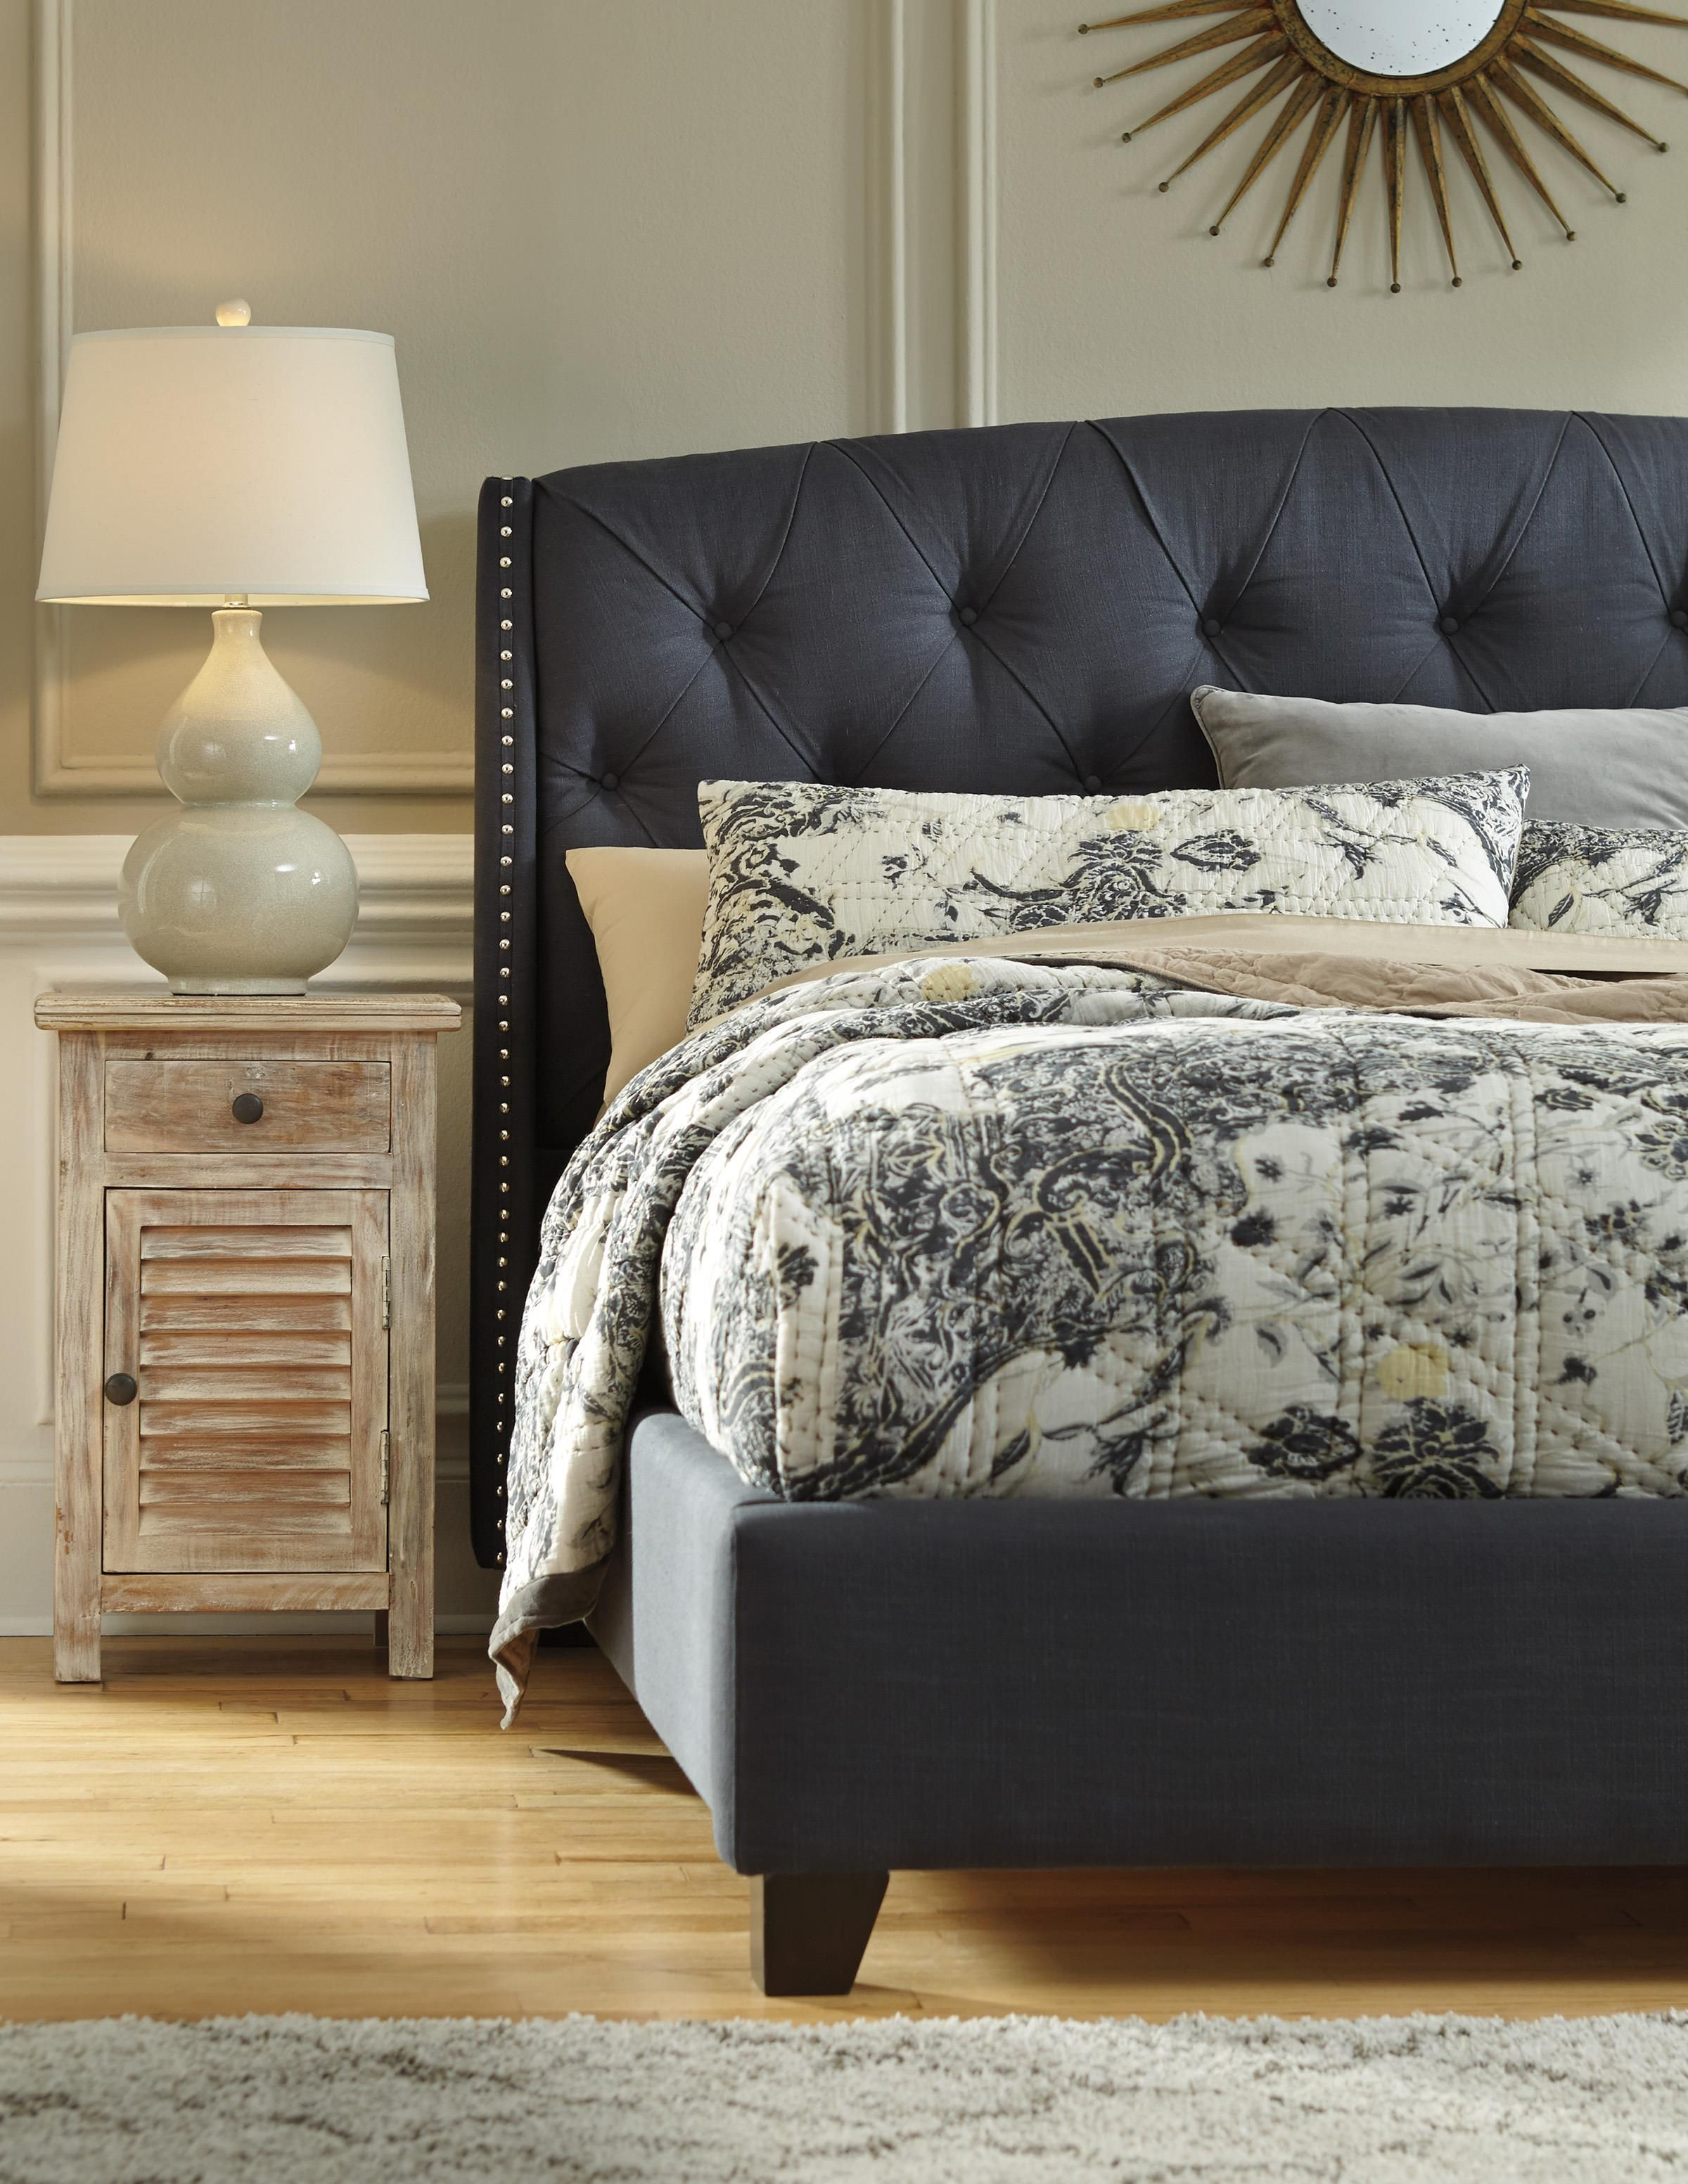 Best Kasidon King Upholstered Bed In Dark Gray With Tufting And 400 x 300